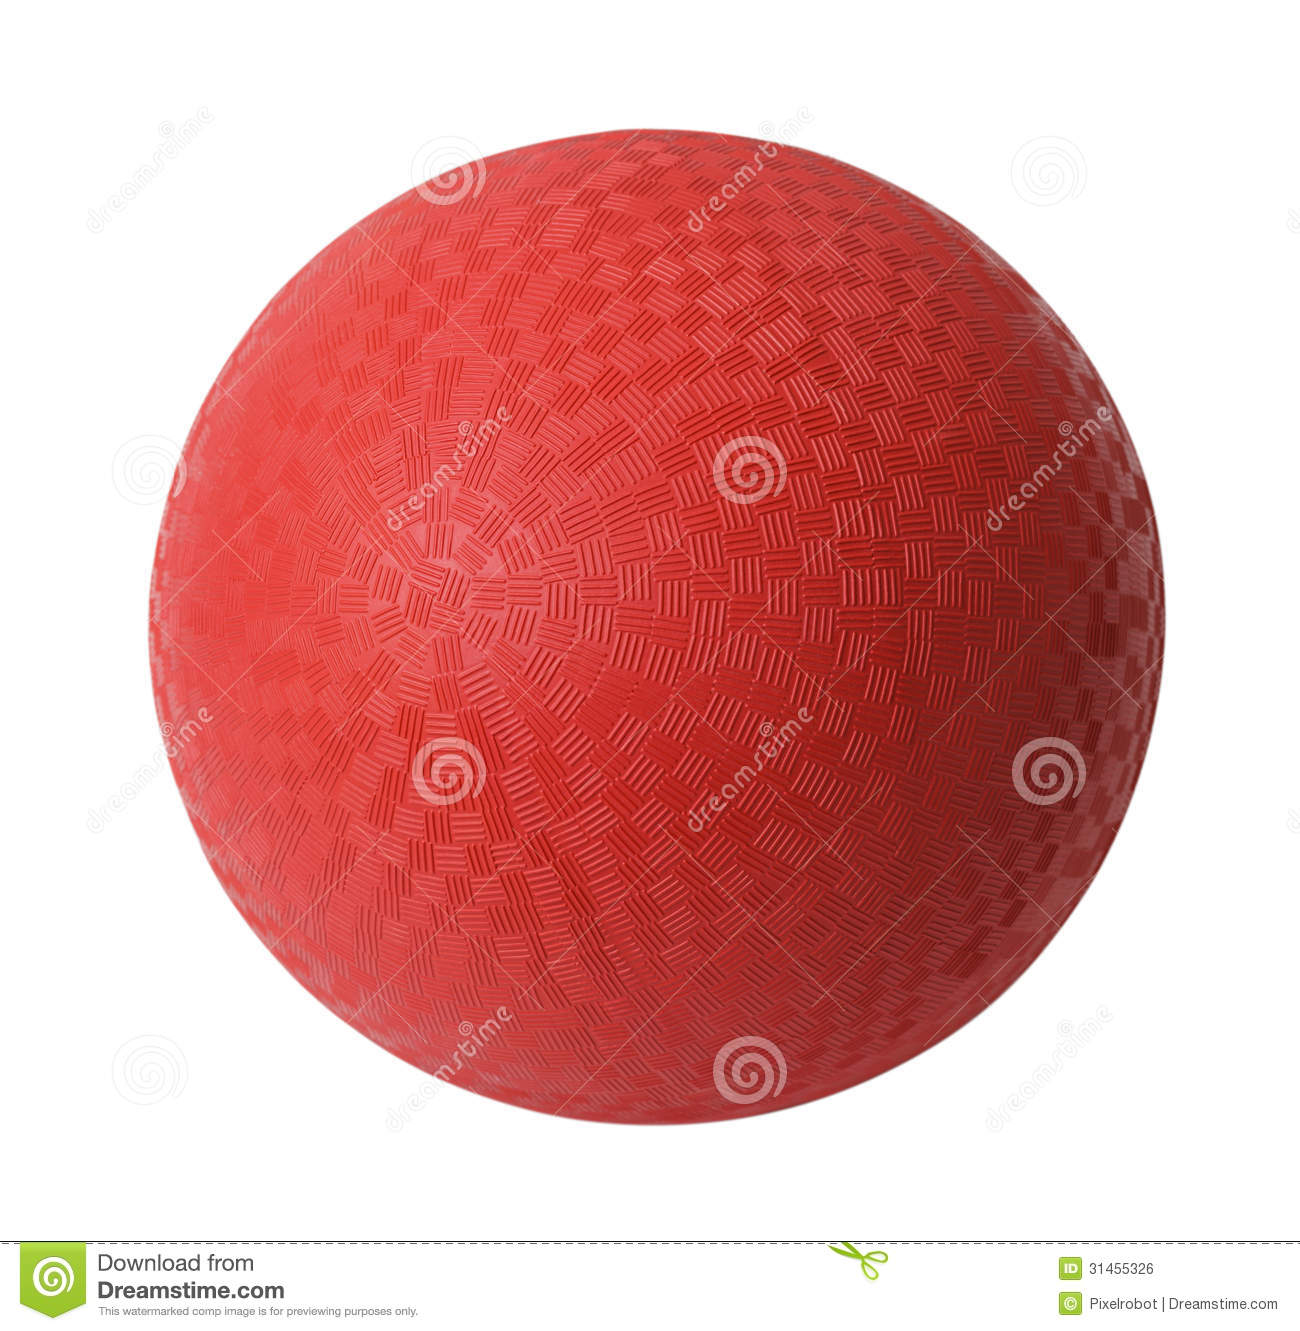 Rubber ball a personal favorite item 2